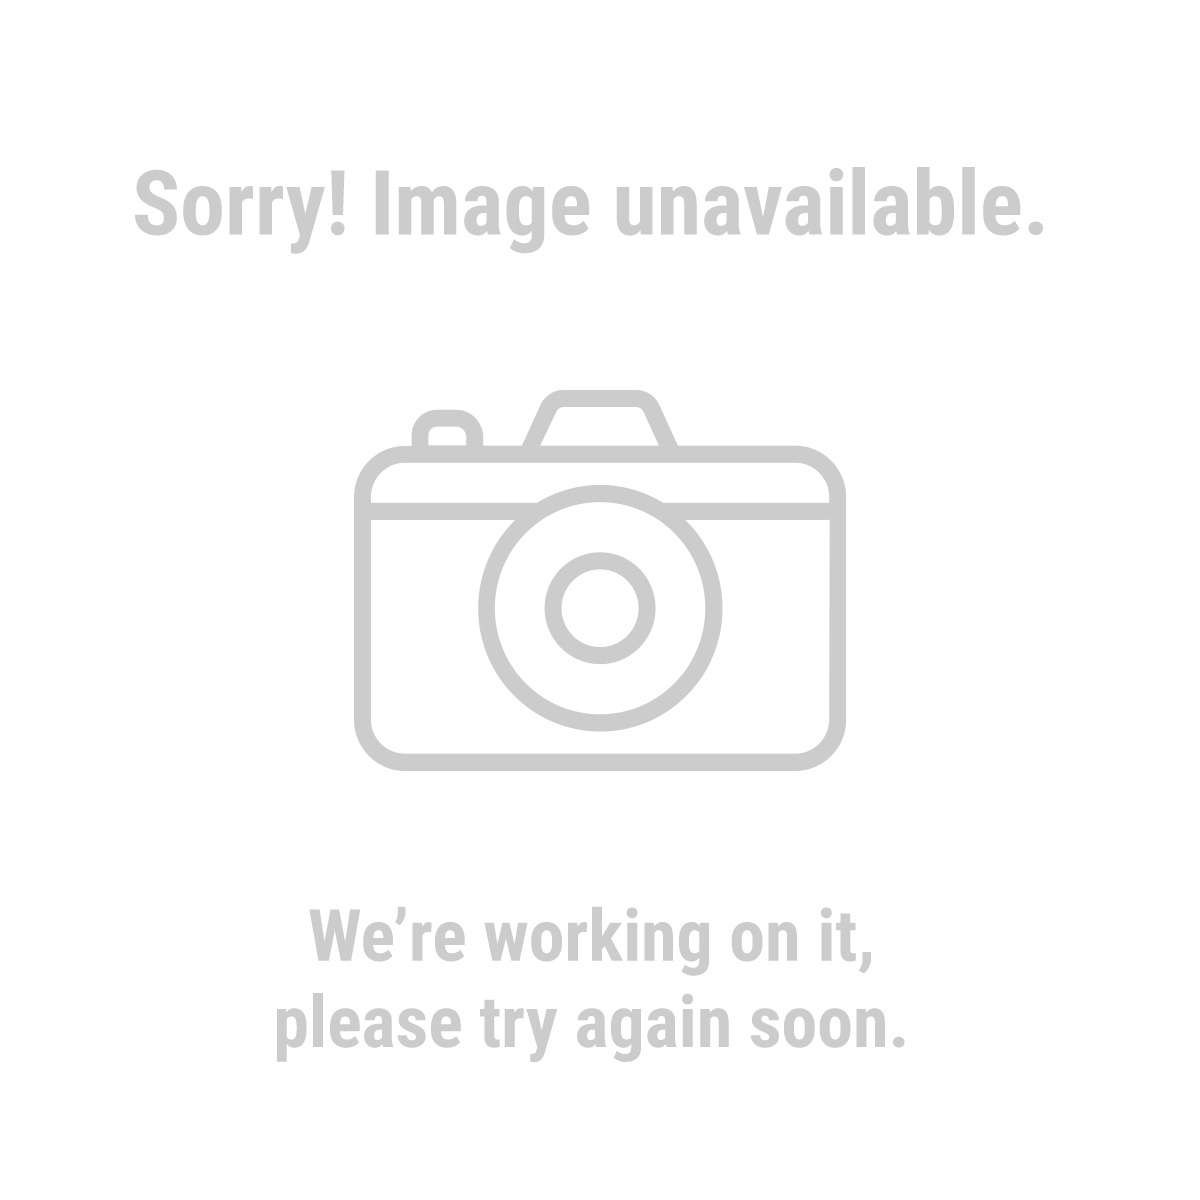 Road Shock 97966 5 Piece Amber Teardrop Cab Light Kit